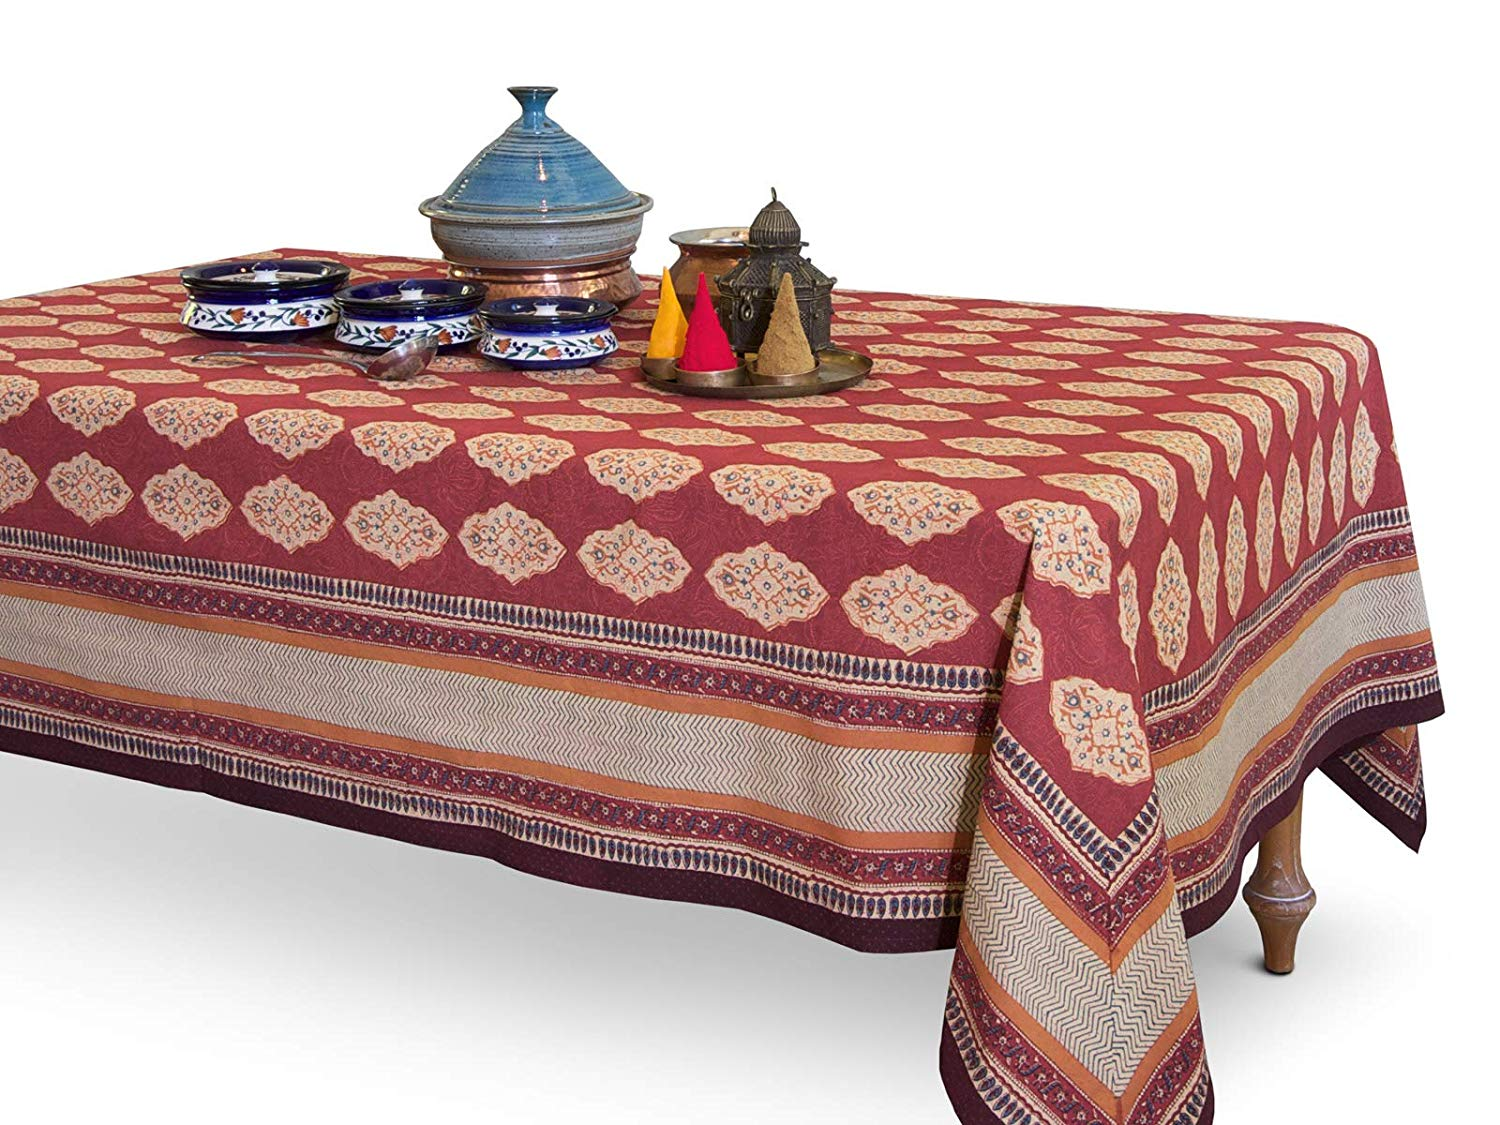 saffron marigold rectangle route cotton artistic accents tablecloth red orange moroccan print bohemian table cover home kitchen narrow sofa side high end furniture companies